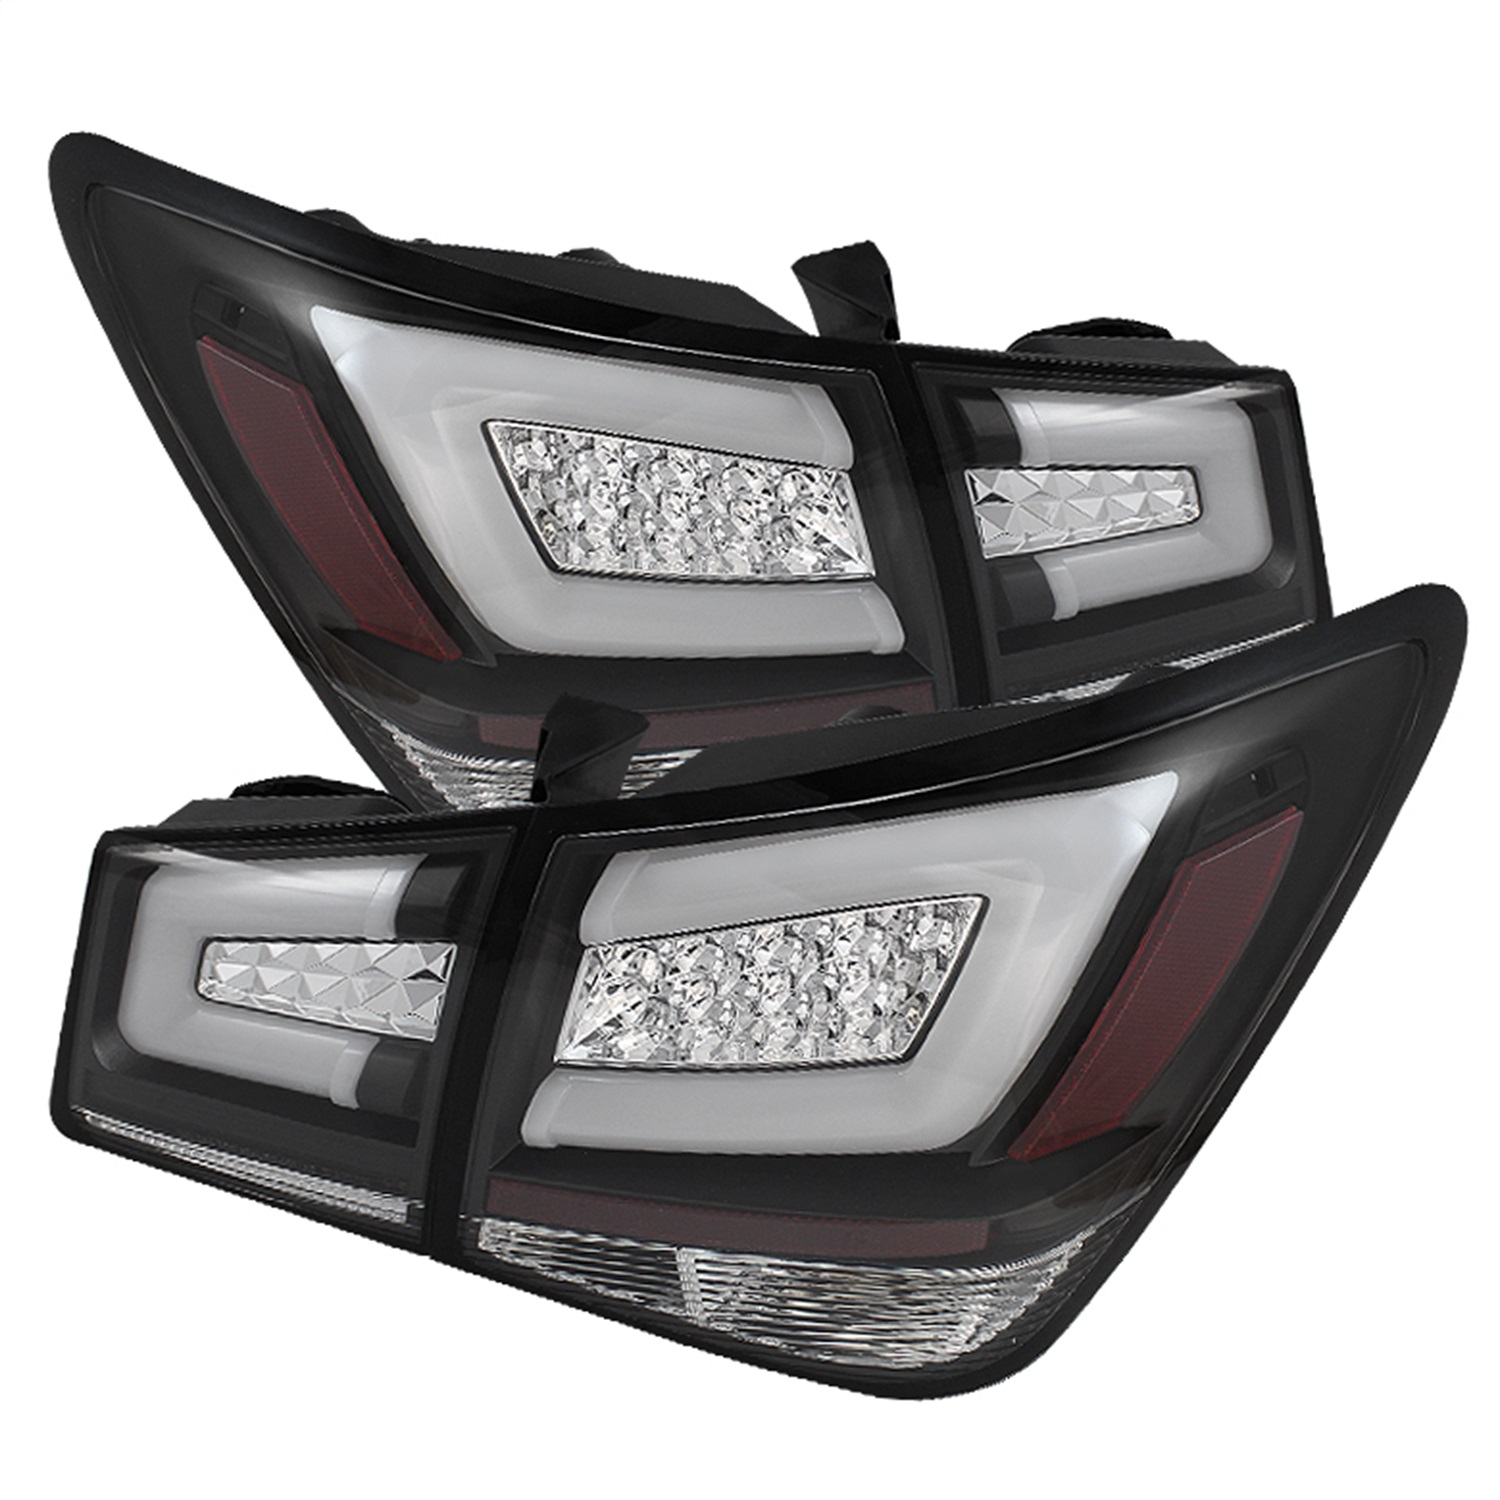 Spyder Auto 5076595 Light Bar LED Tail Lights Fits 11-16 Cruze Cruze Limited